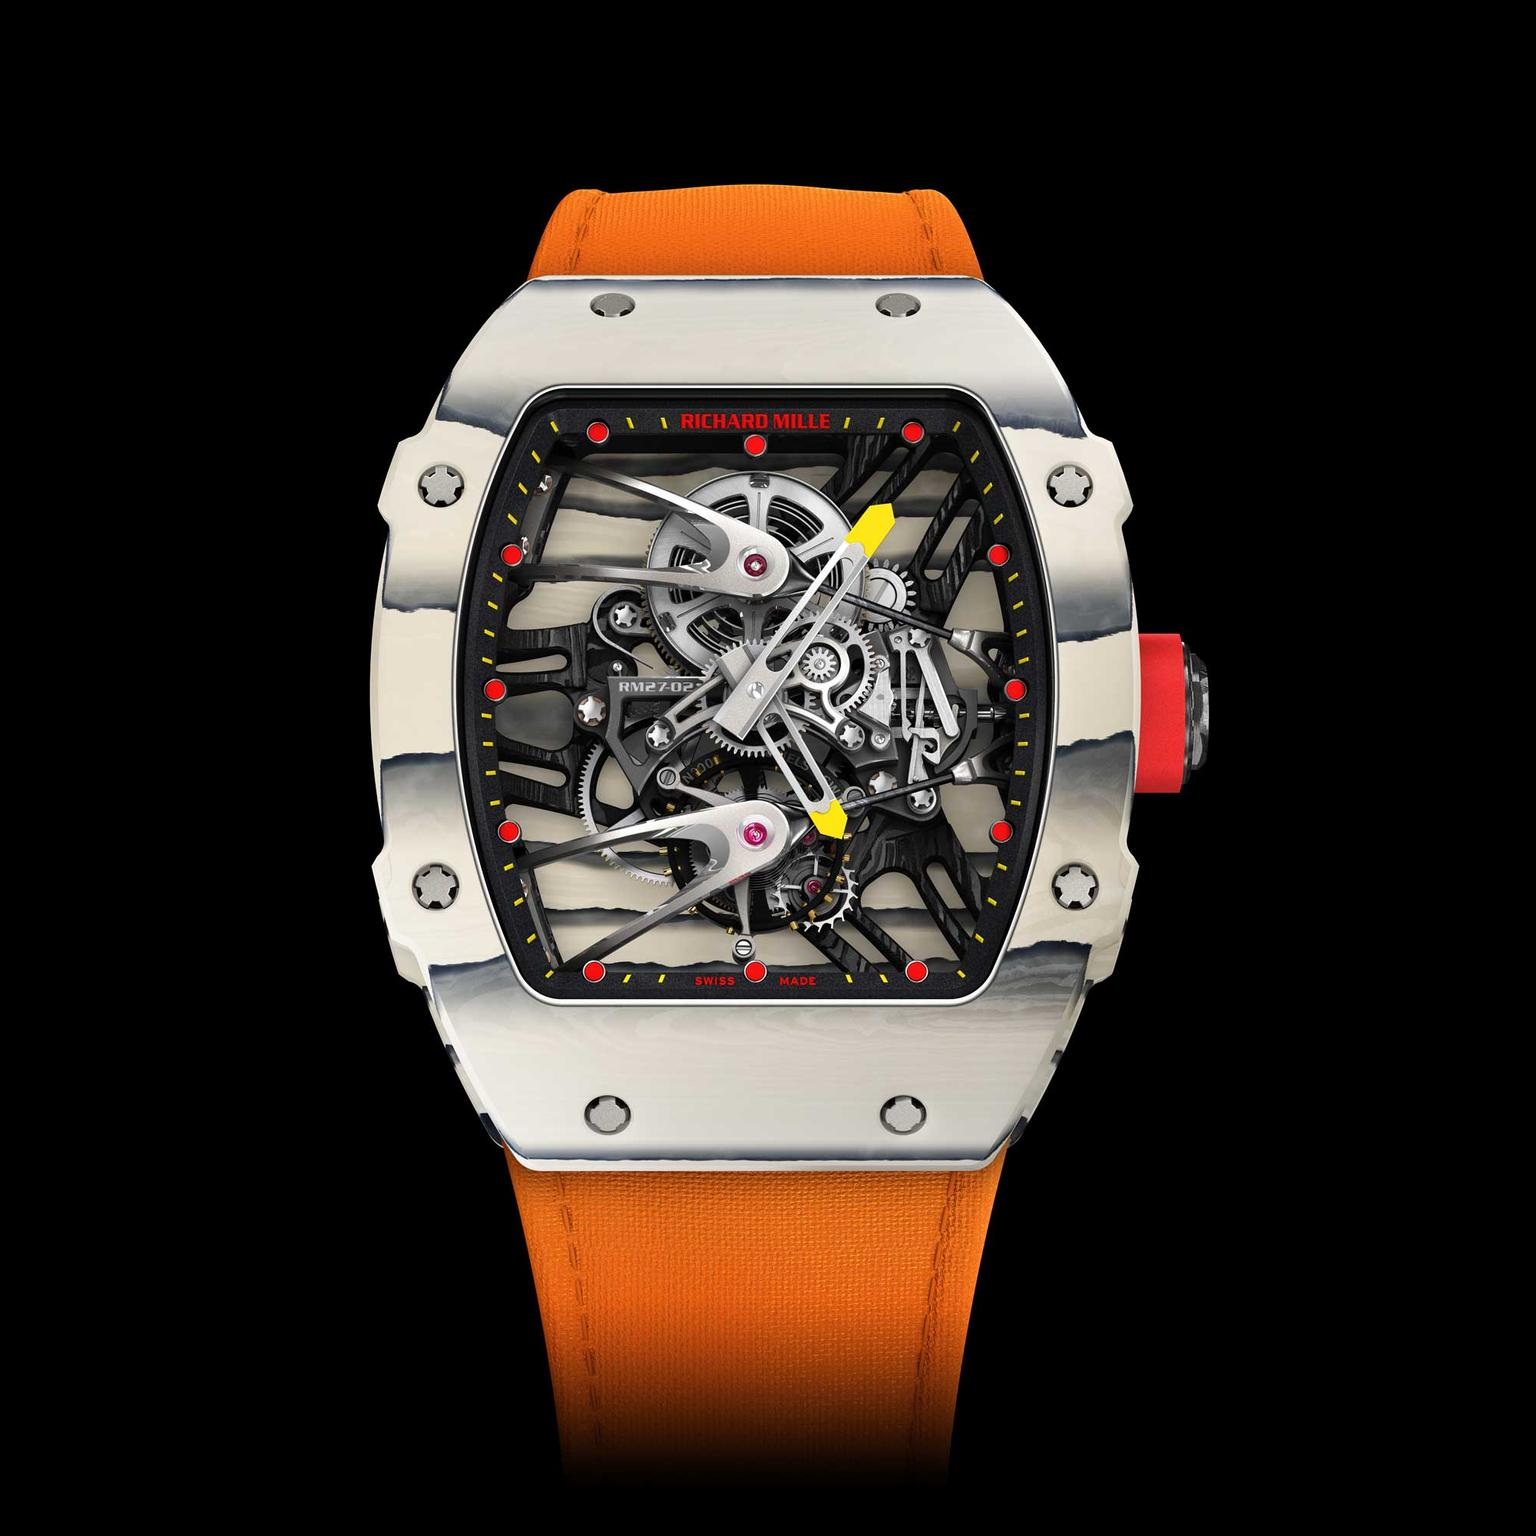 Richard Mille RM 27-02 watch